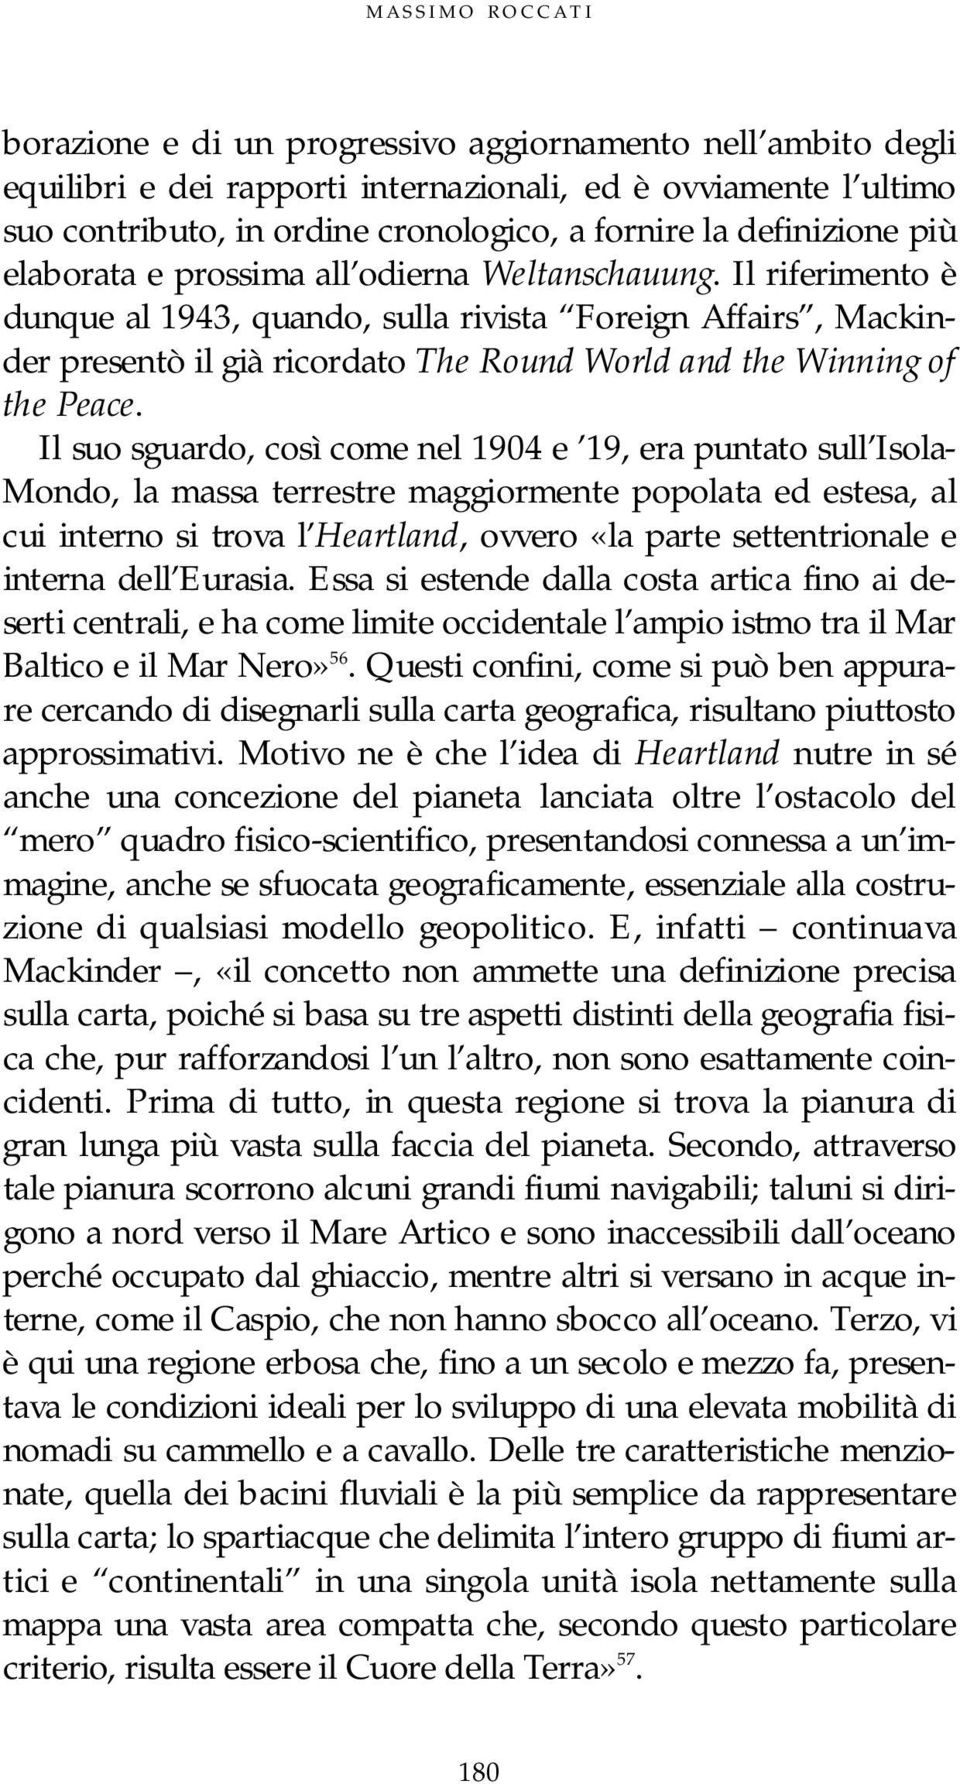 Il riferimento è dunque al 1943, quando, sulla rivista Foreign Affairs, Mackinder presentò il già ricordato The Round World and the Winning of the Peace.